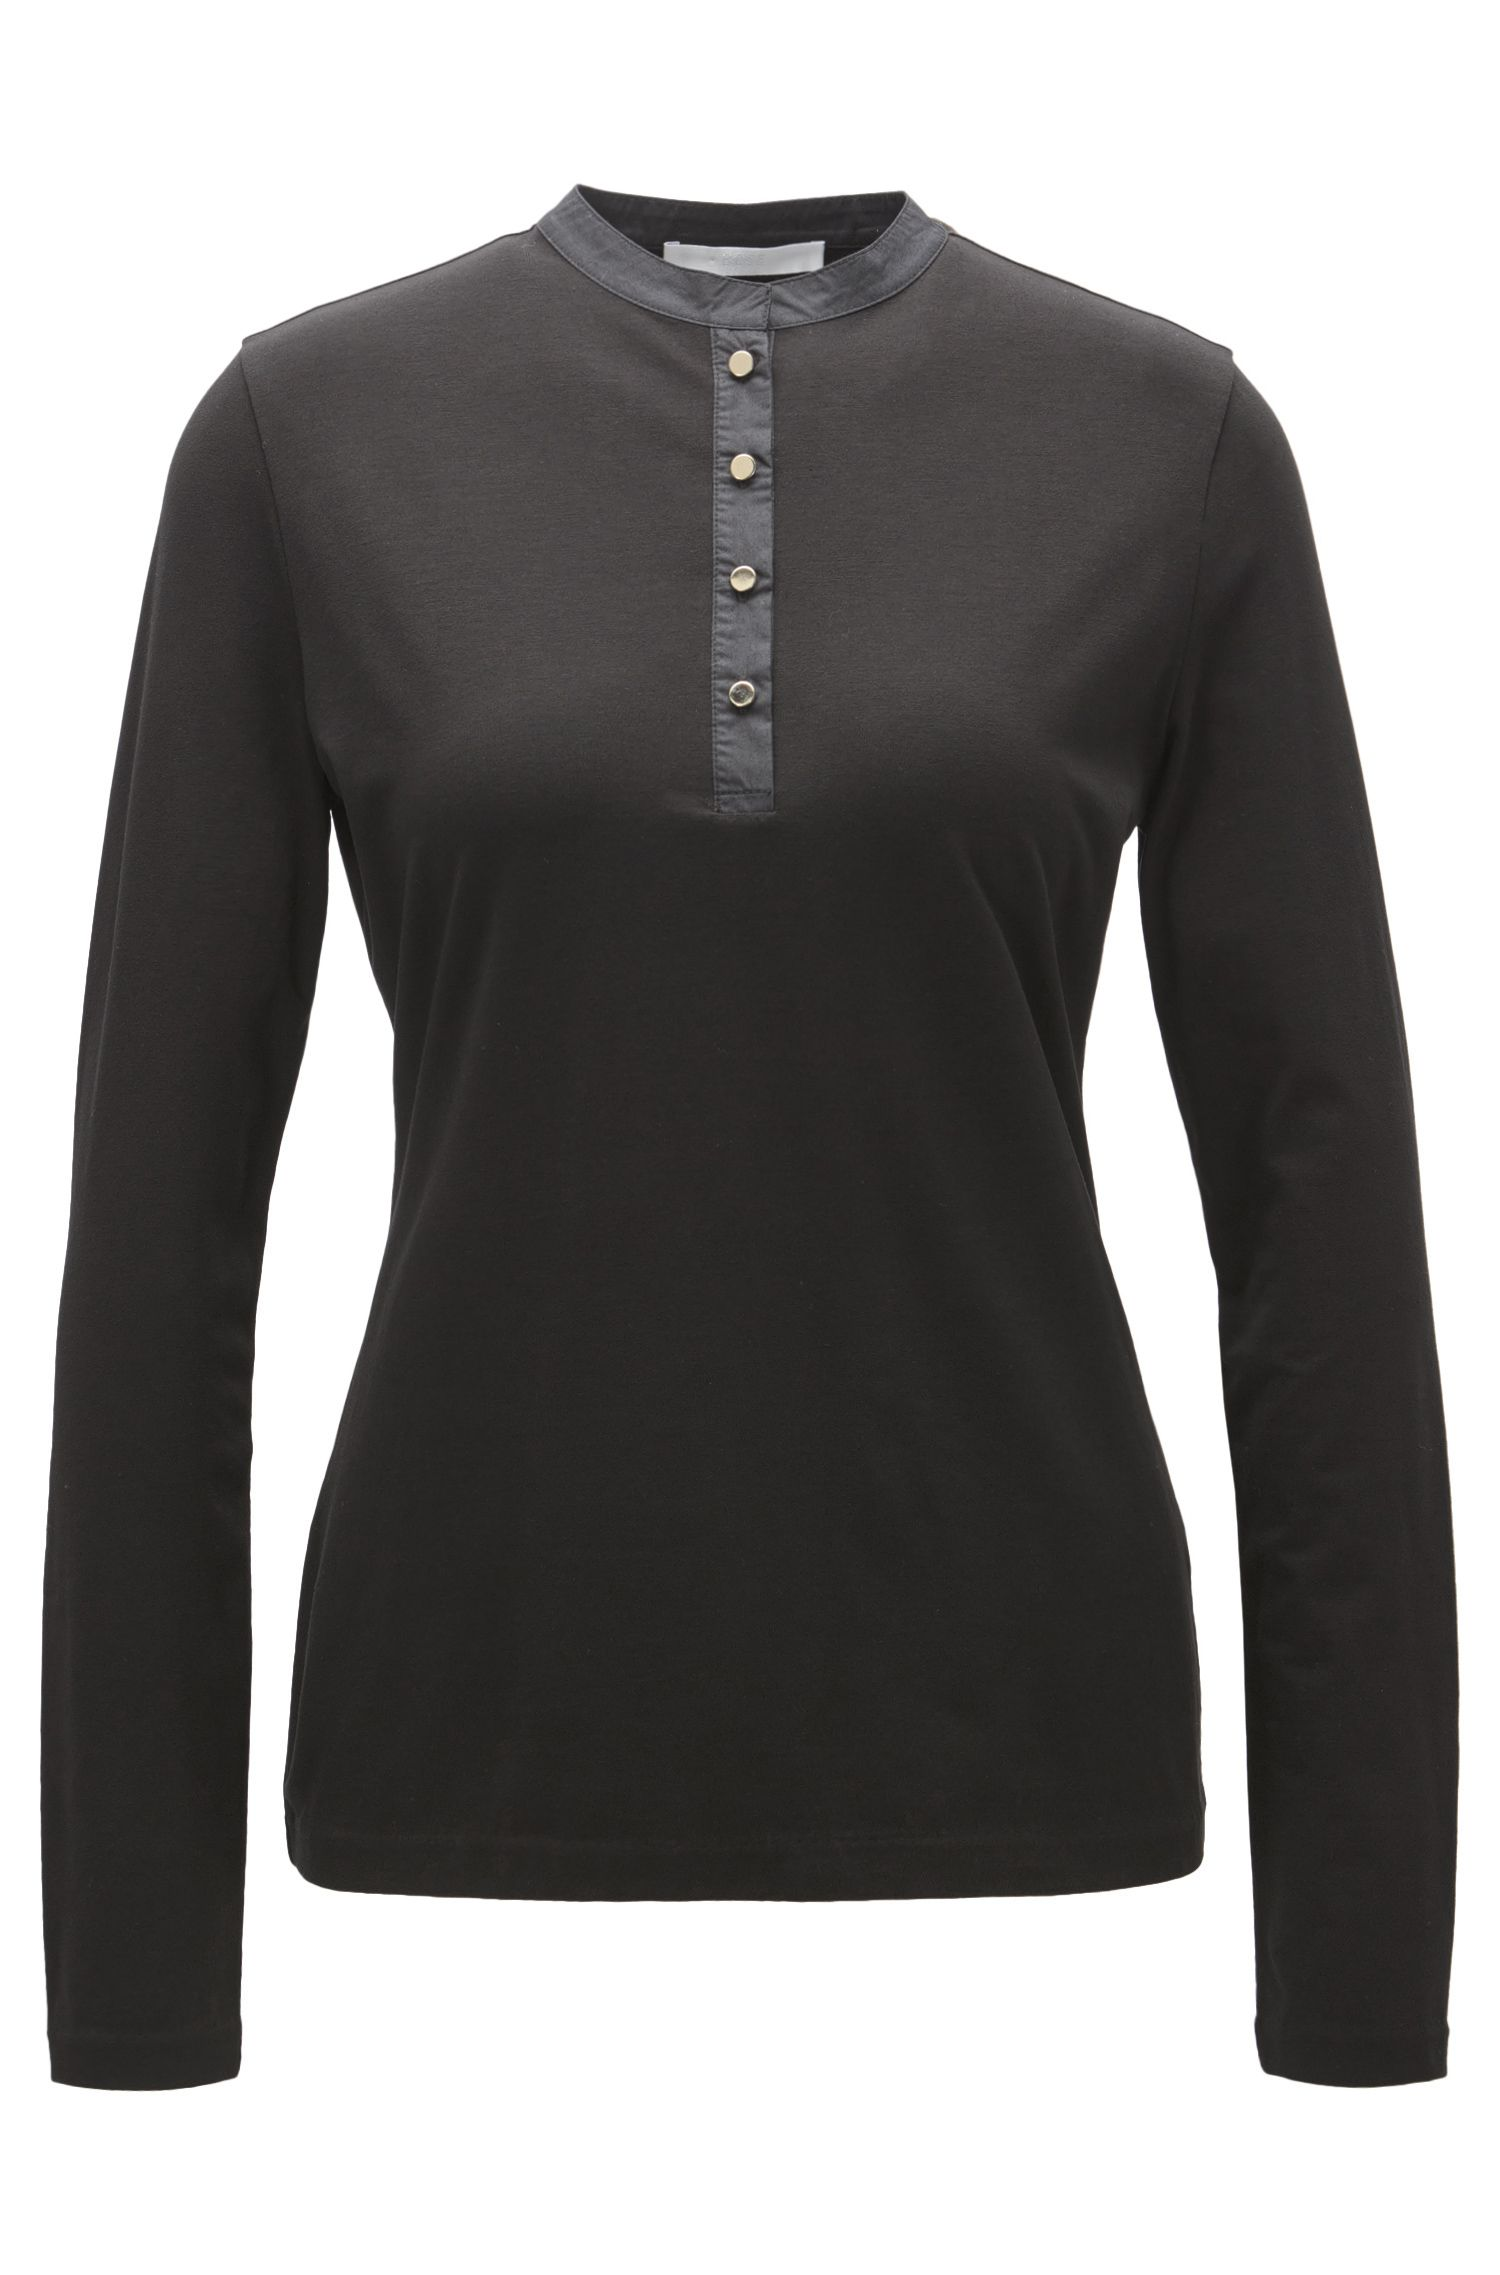 Henley top with metallic buttons